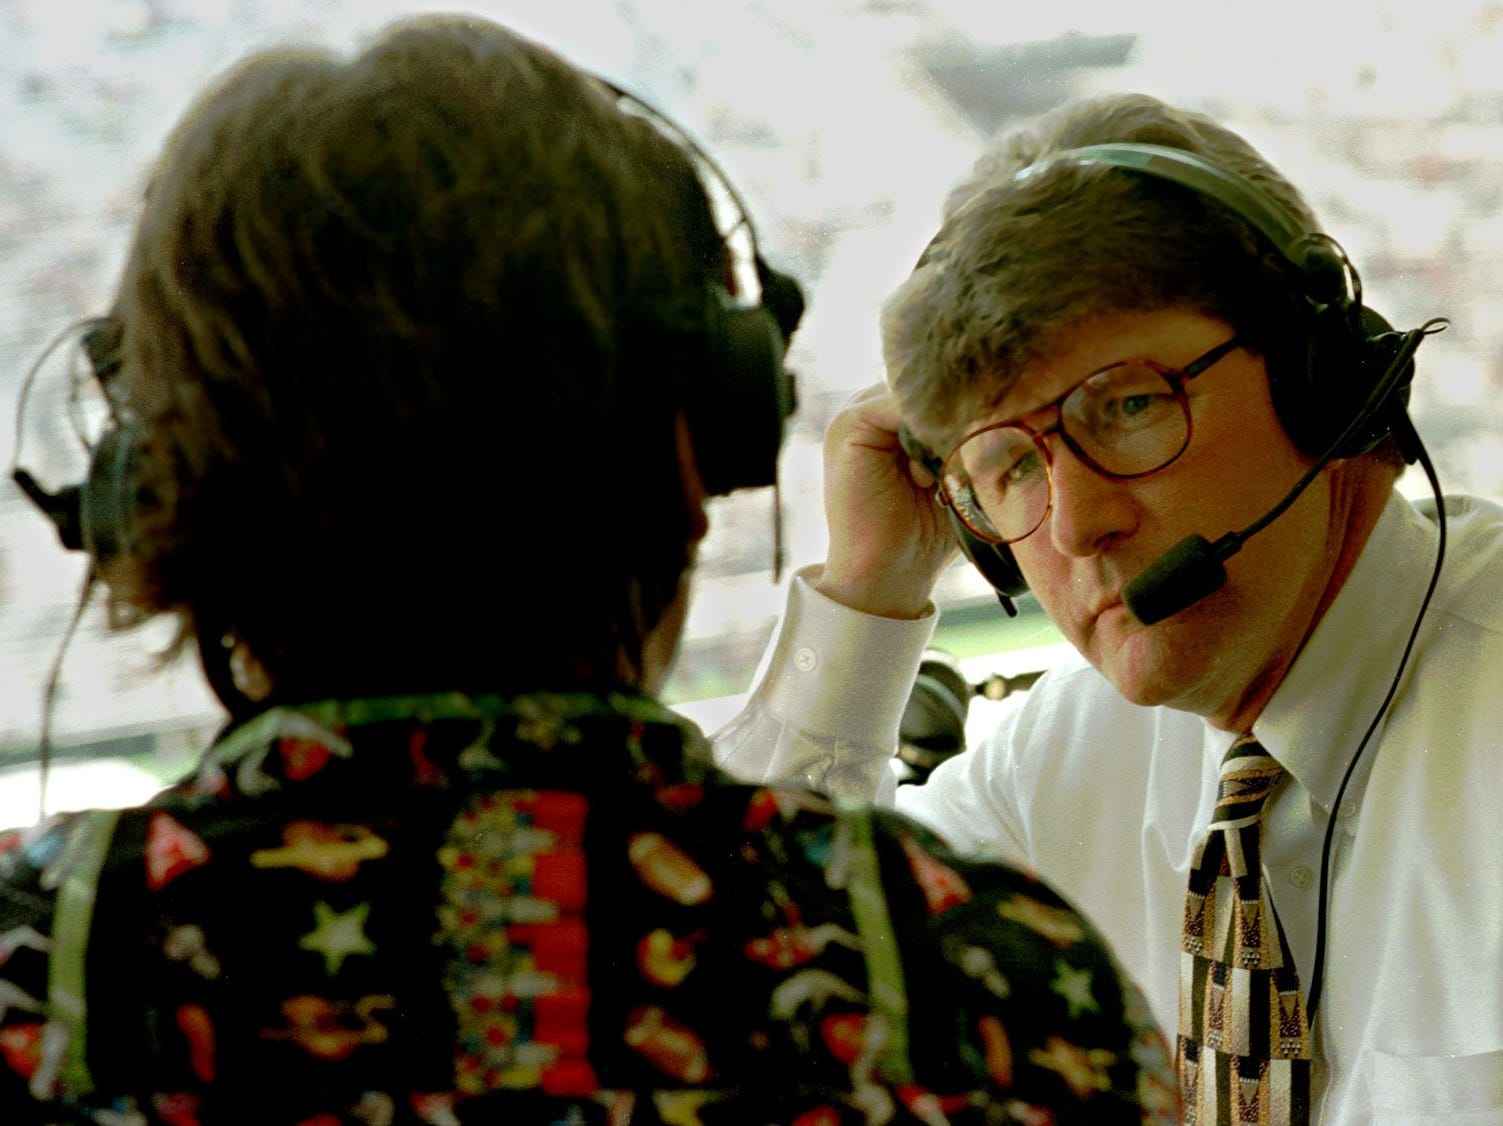 """From 1997: Gary Dolphin listens to color commentator Ed Podolak during Dolphin's first game as the exclusive radio voice of Iowa football. """"I'm pretty well drained,"""" he said after calling Iowa's 66-0 rout of Northern Iowa. """"I'm ecstatic to get the first one out of the way."""""""